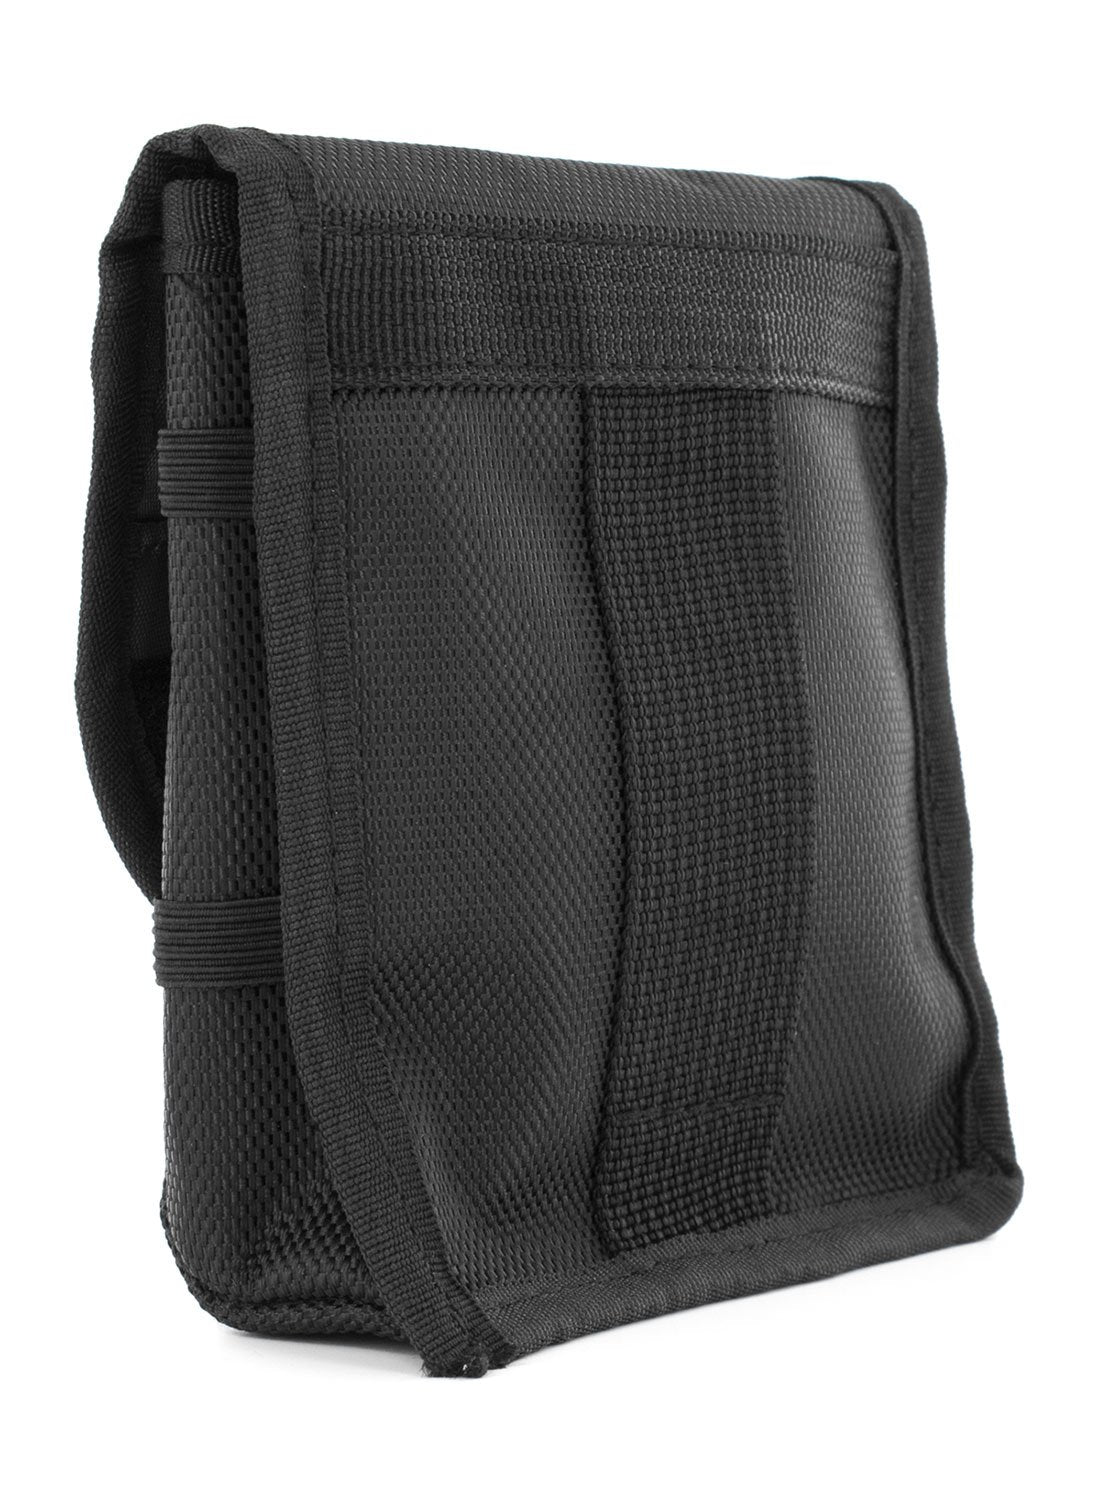 Back image of the Proporta Universal bag in Black